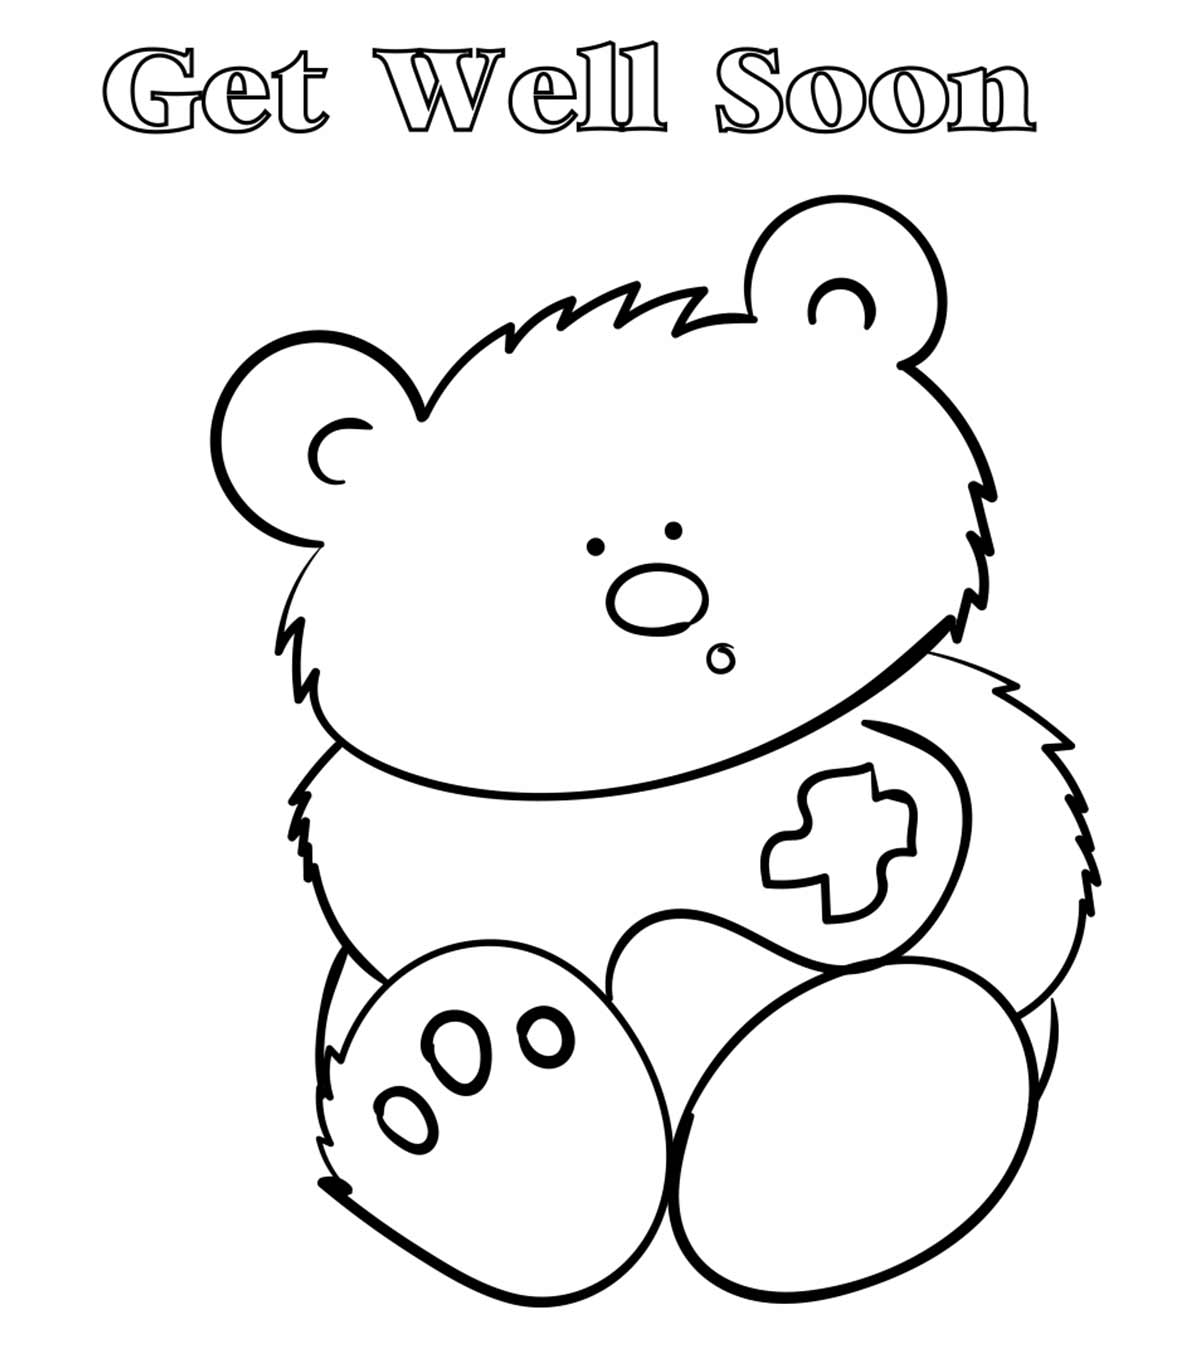 get well soon printable coloring cards get well soon coloring cards printable sketch coloring page well coloring get printable cards soon